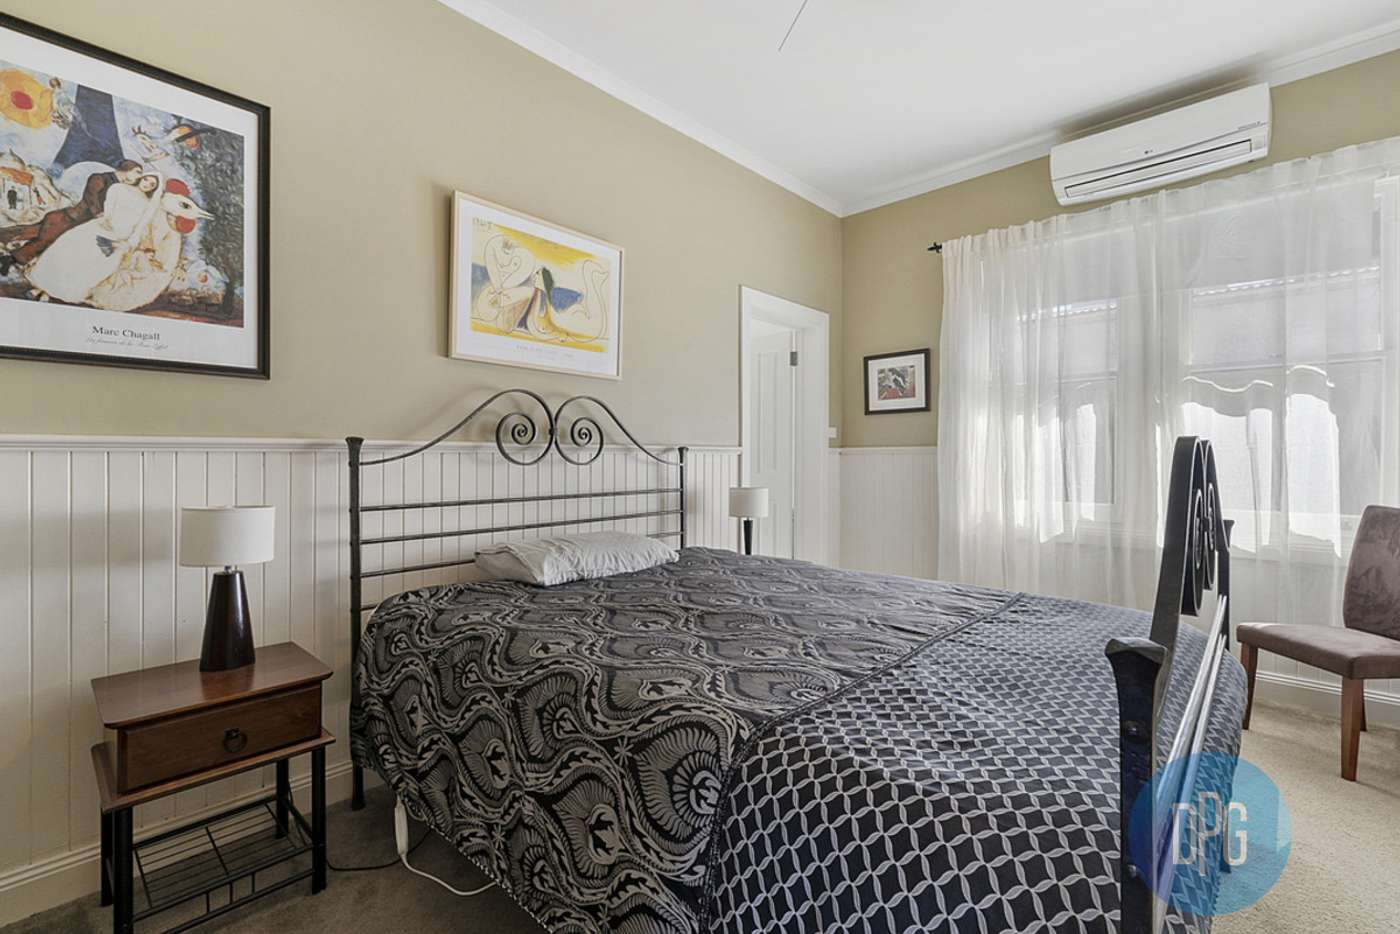 Fifth view of Homely house listing, 9 The Parade, Mansfield VIC 3722